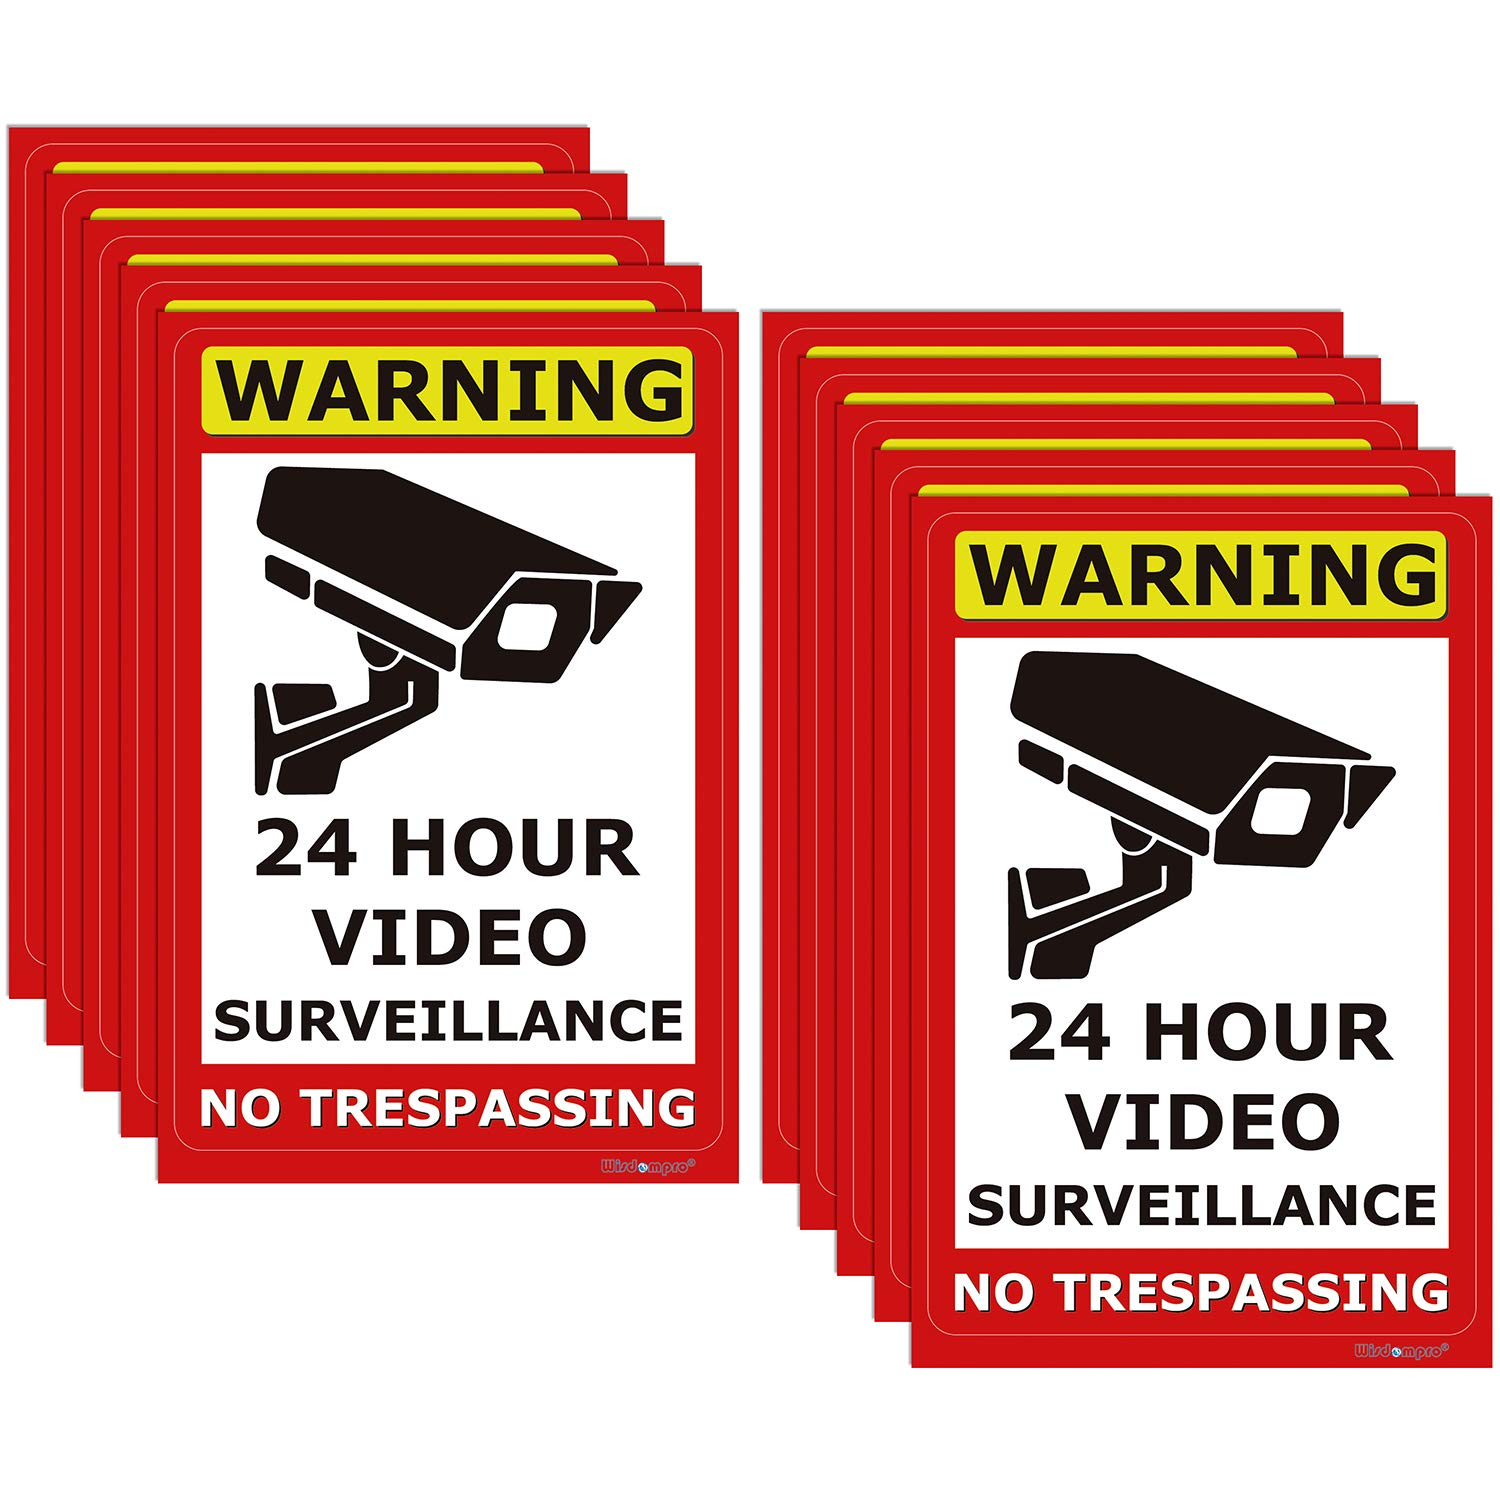 10 Pack 24 Hour Video Surveillance Sign, Wisdompro No Trespassing Warning Sticker Security Camera Sign Indoor or Outdoor Use for Home, Business, CCTV, UV Protected & Waterproof - 4 x 6 Inch